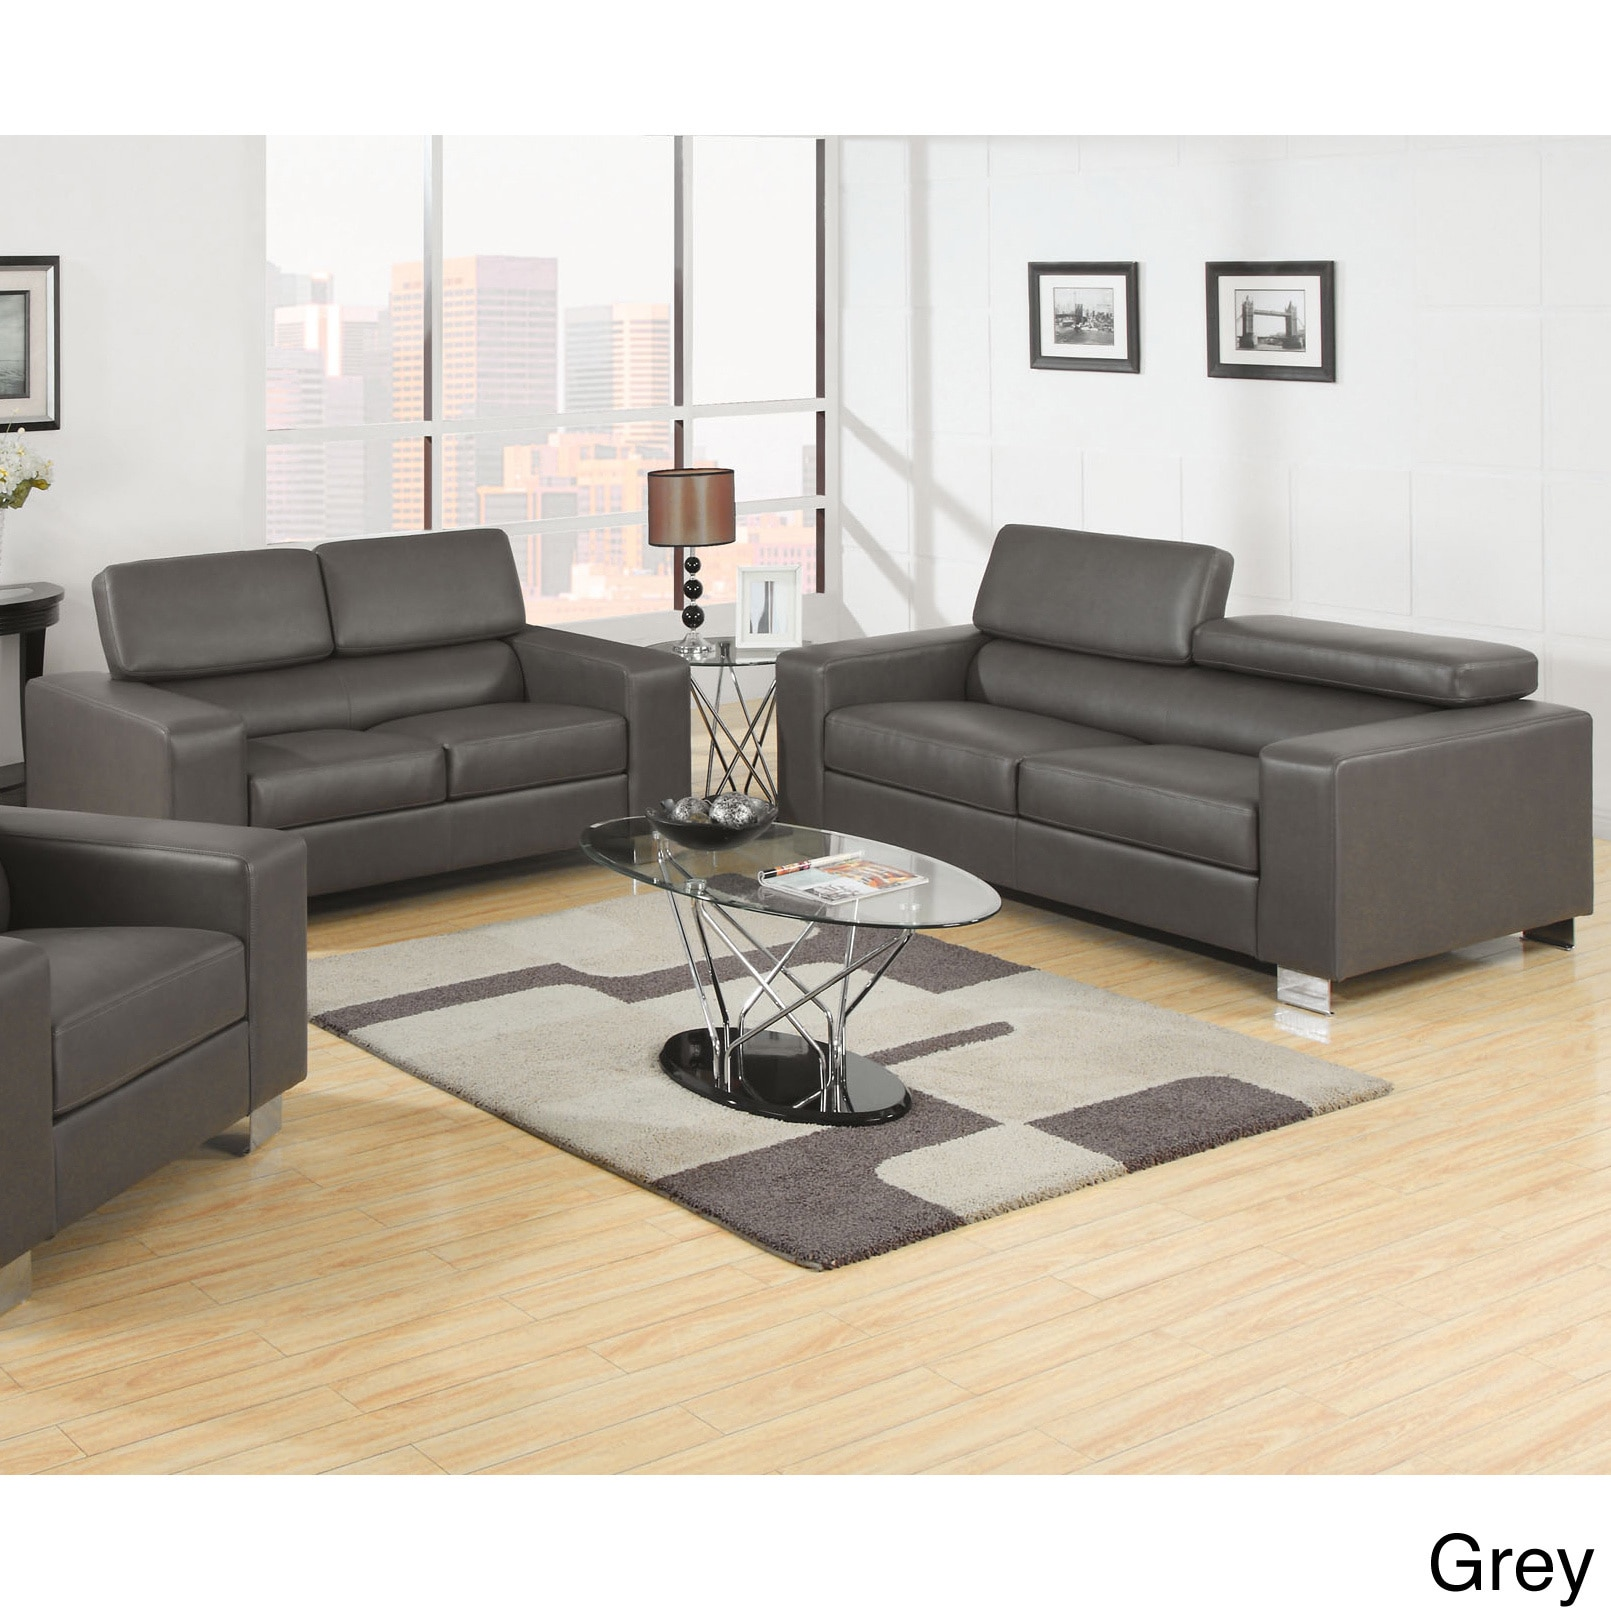 living helen rm and set bonded sofa leather room couch sets recliner modern red loveseat